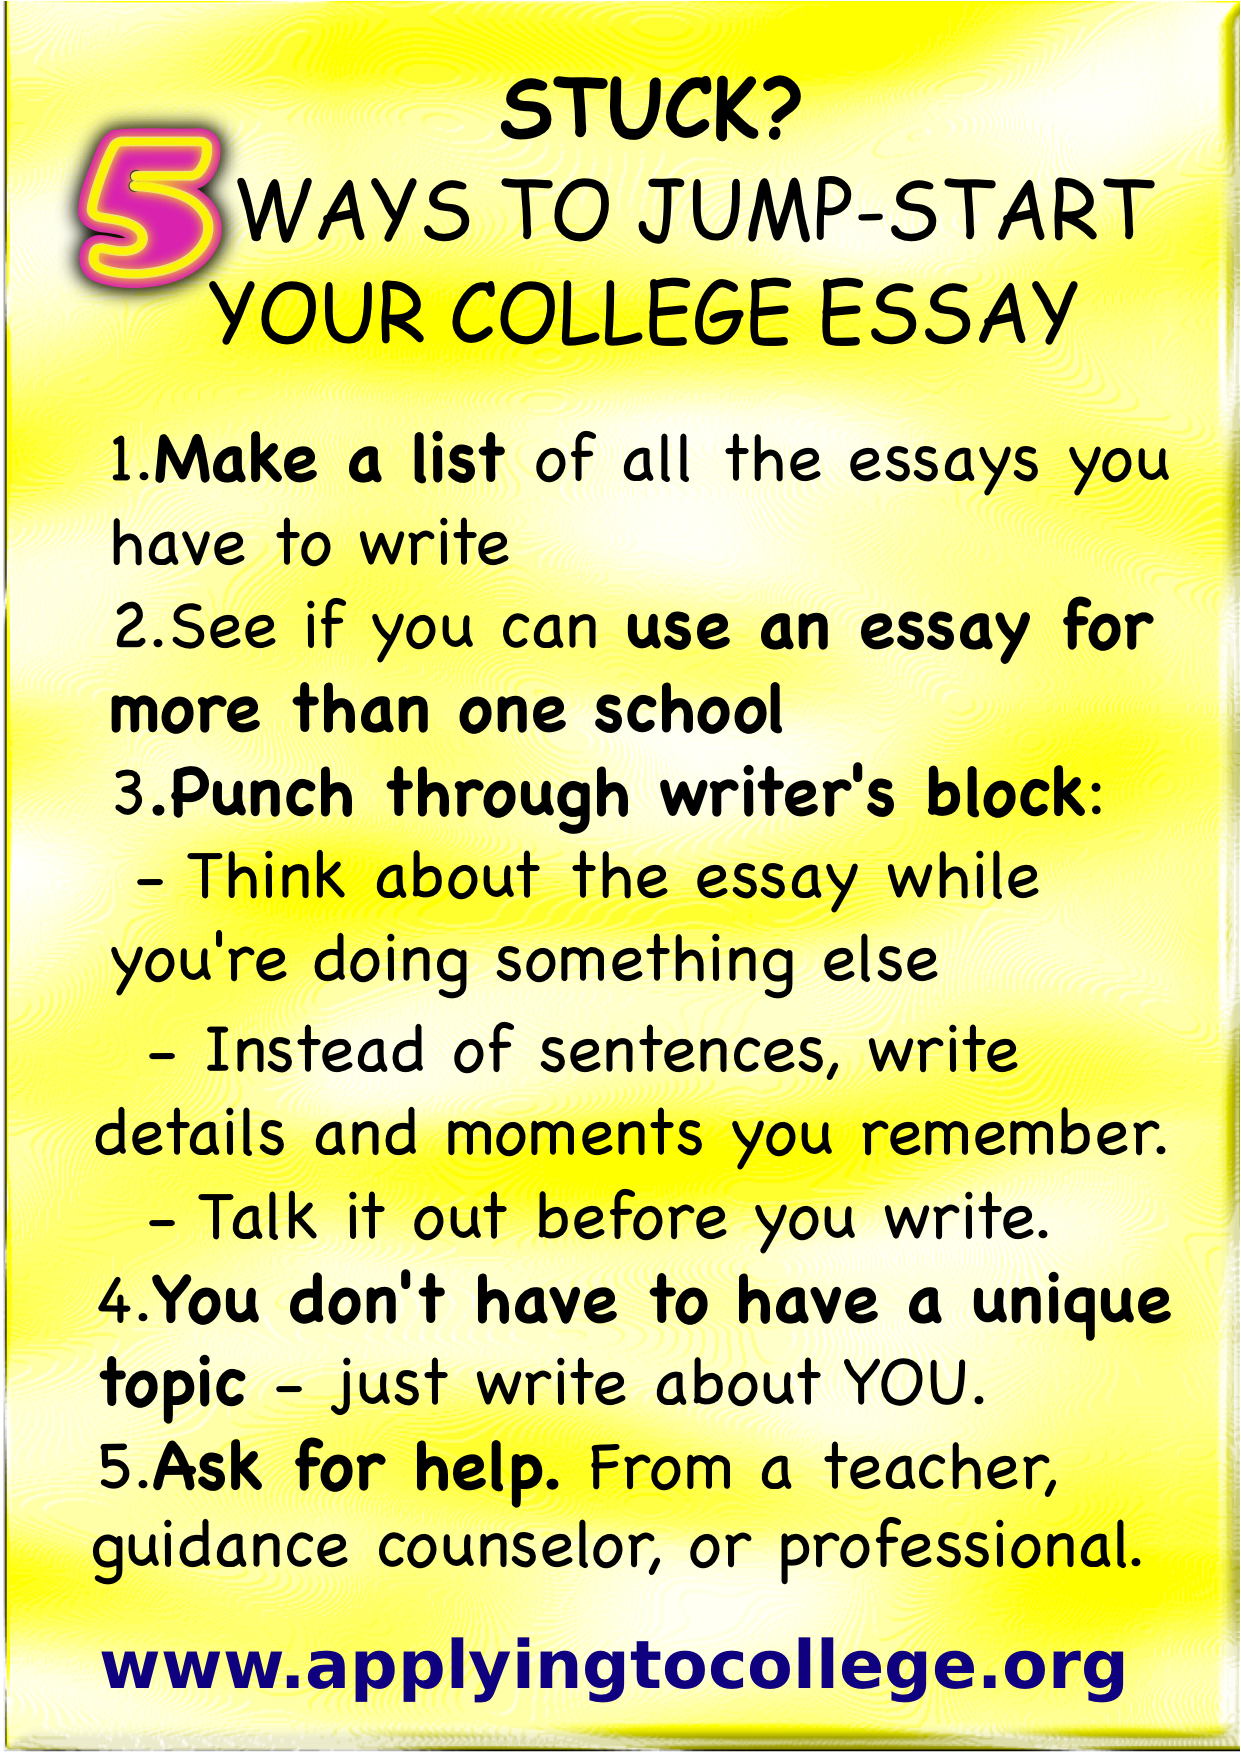 Professionally writing college admissions essays yourself